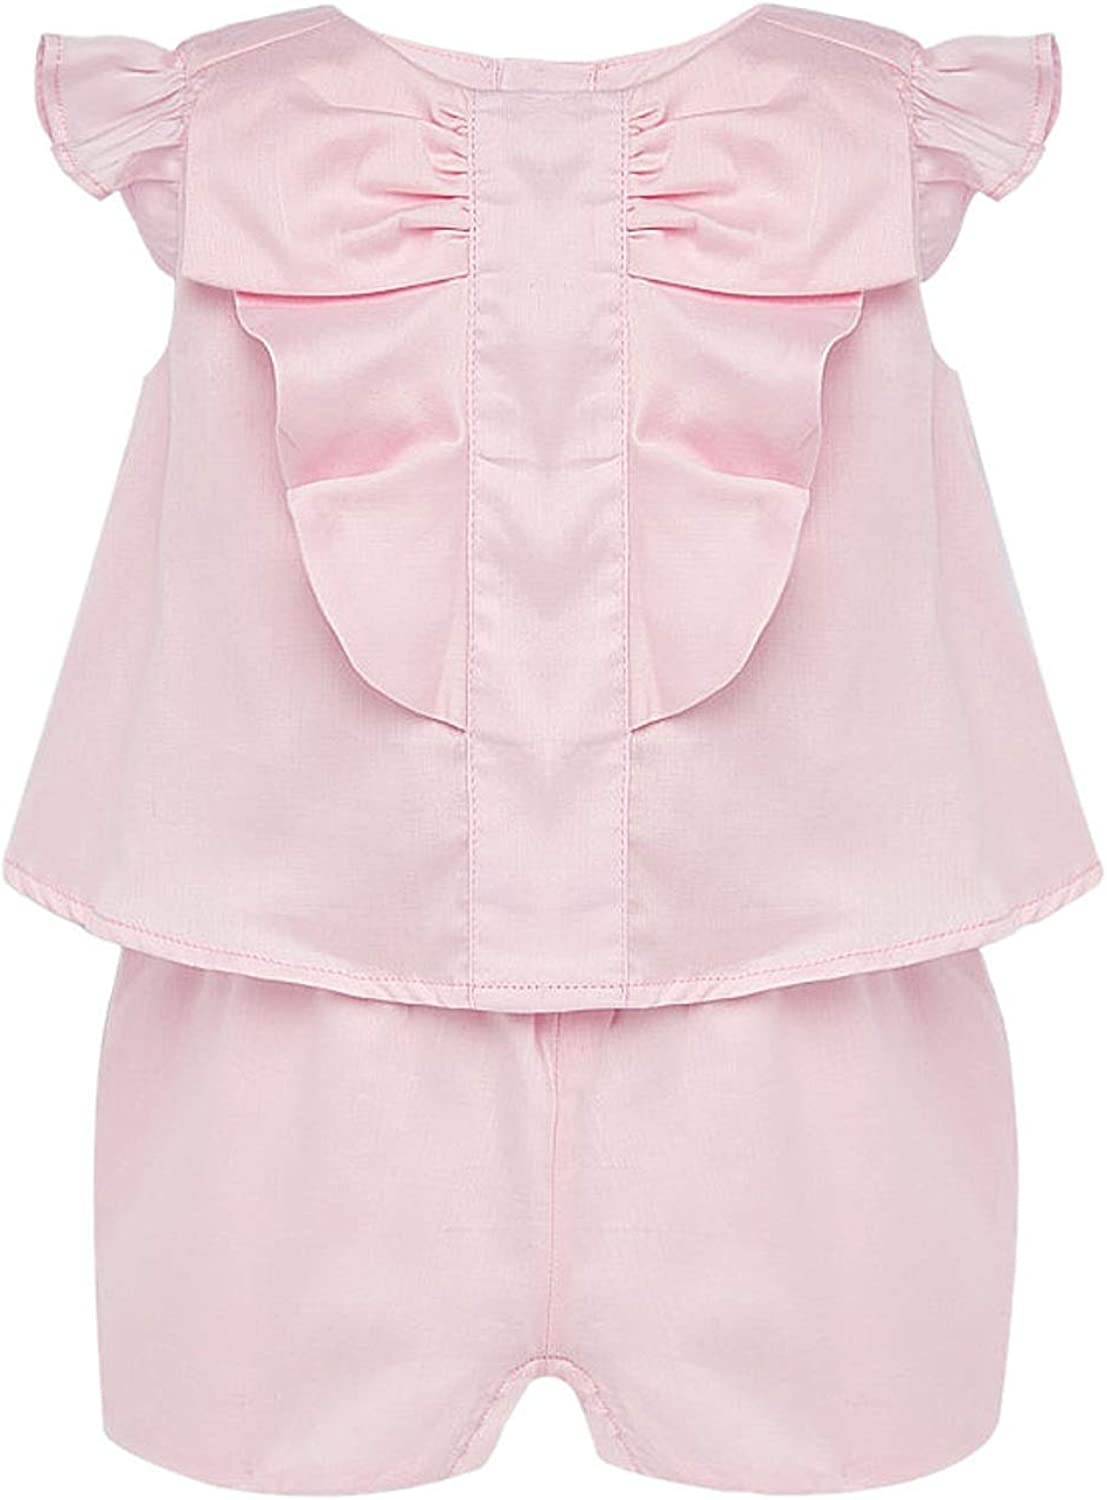 Mayoral - Voile Jumpsuit for Memphis Mall 1894 67% OFF of fixed price Rose Baby-Girls